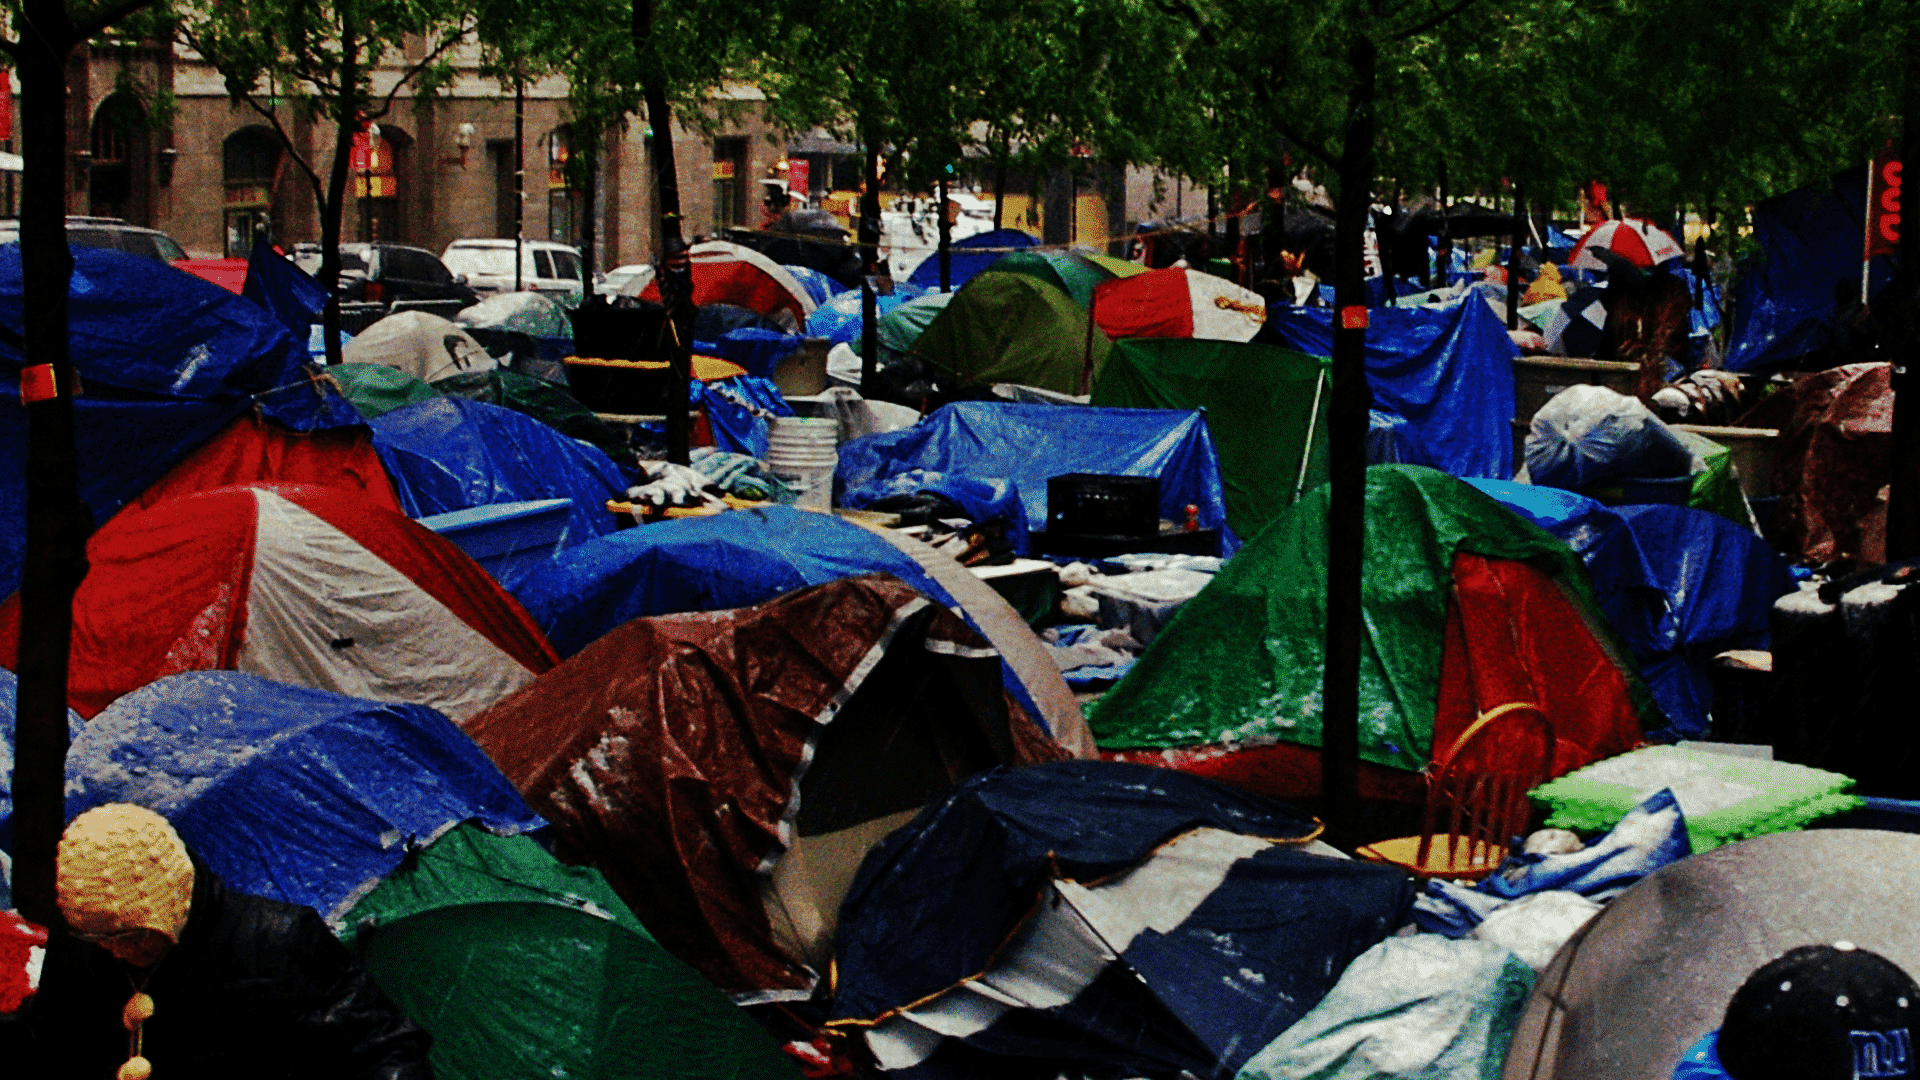 Zucotti Park, New York: Occupy Wall Street protests.